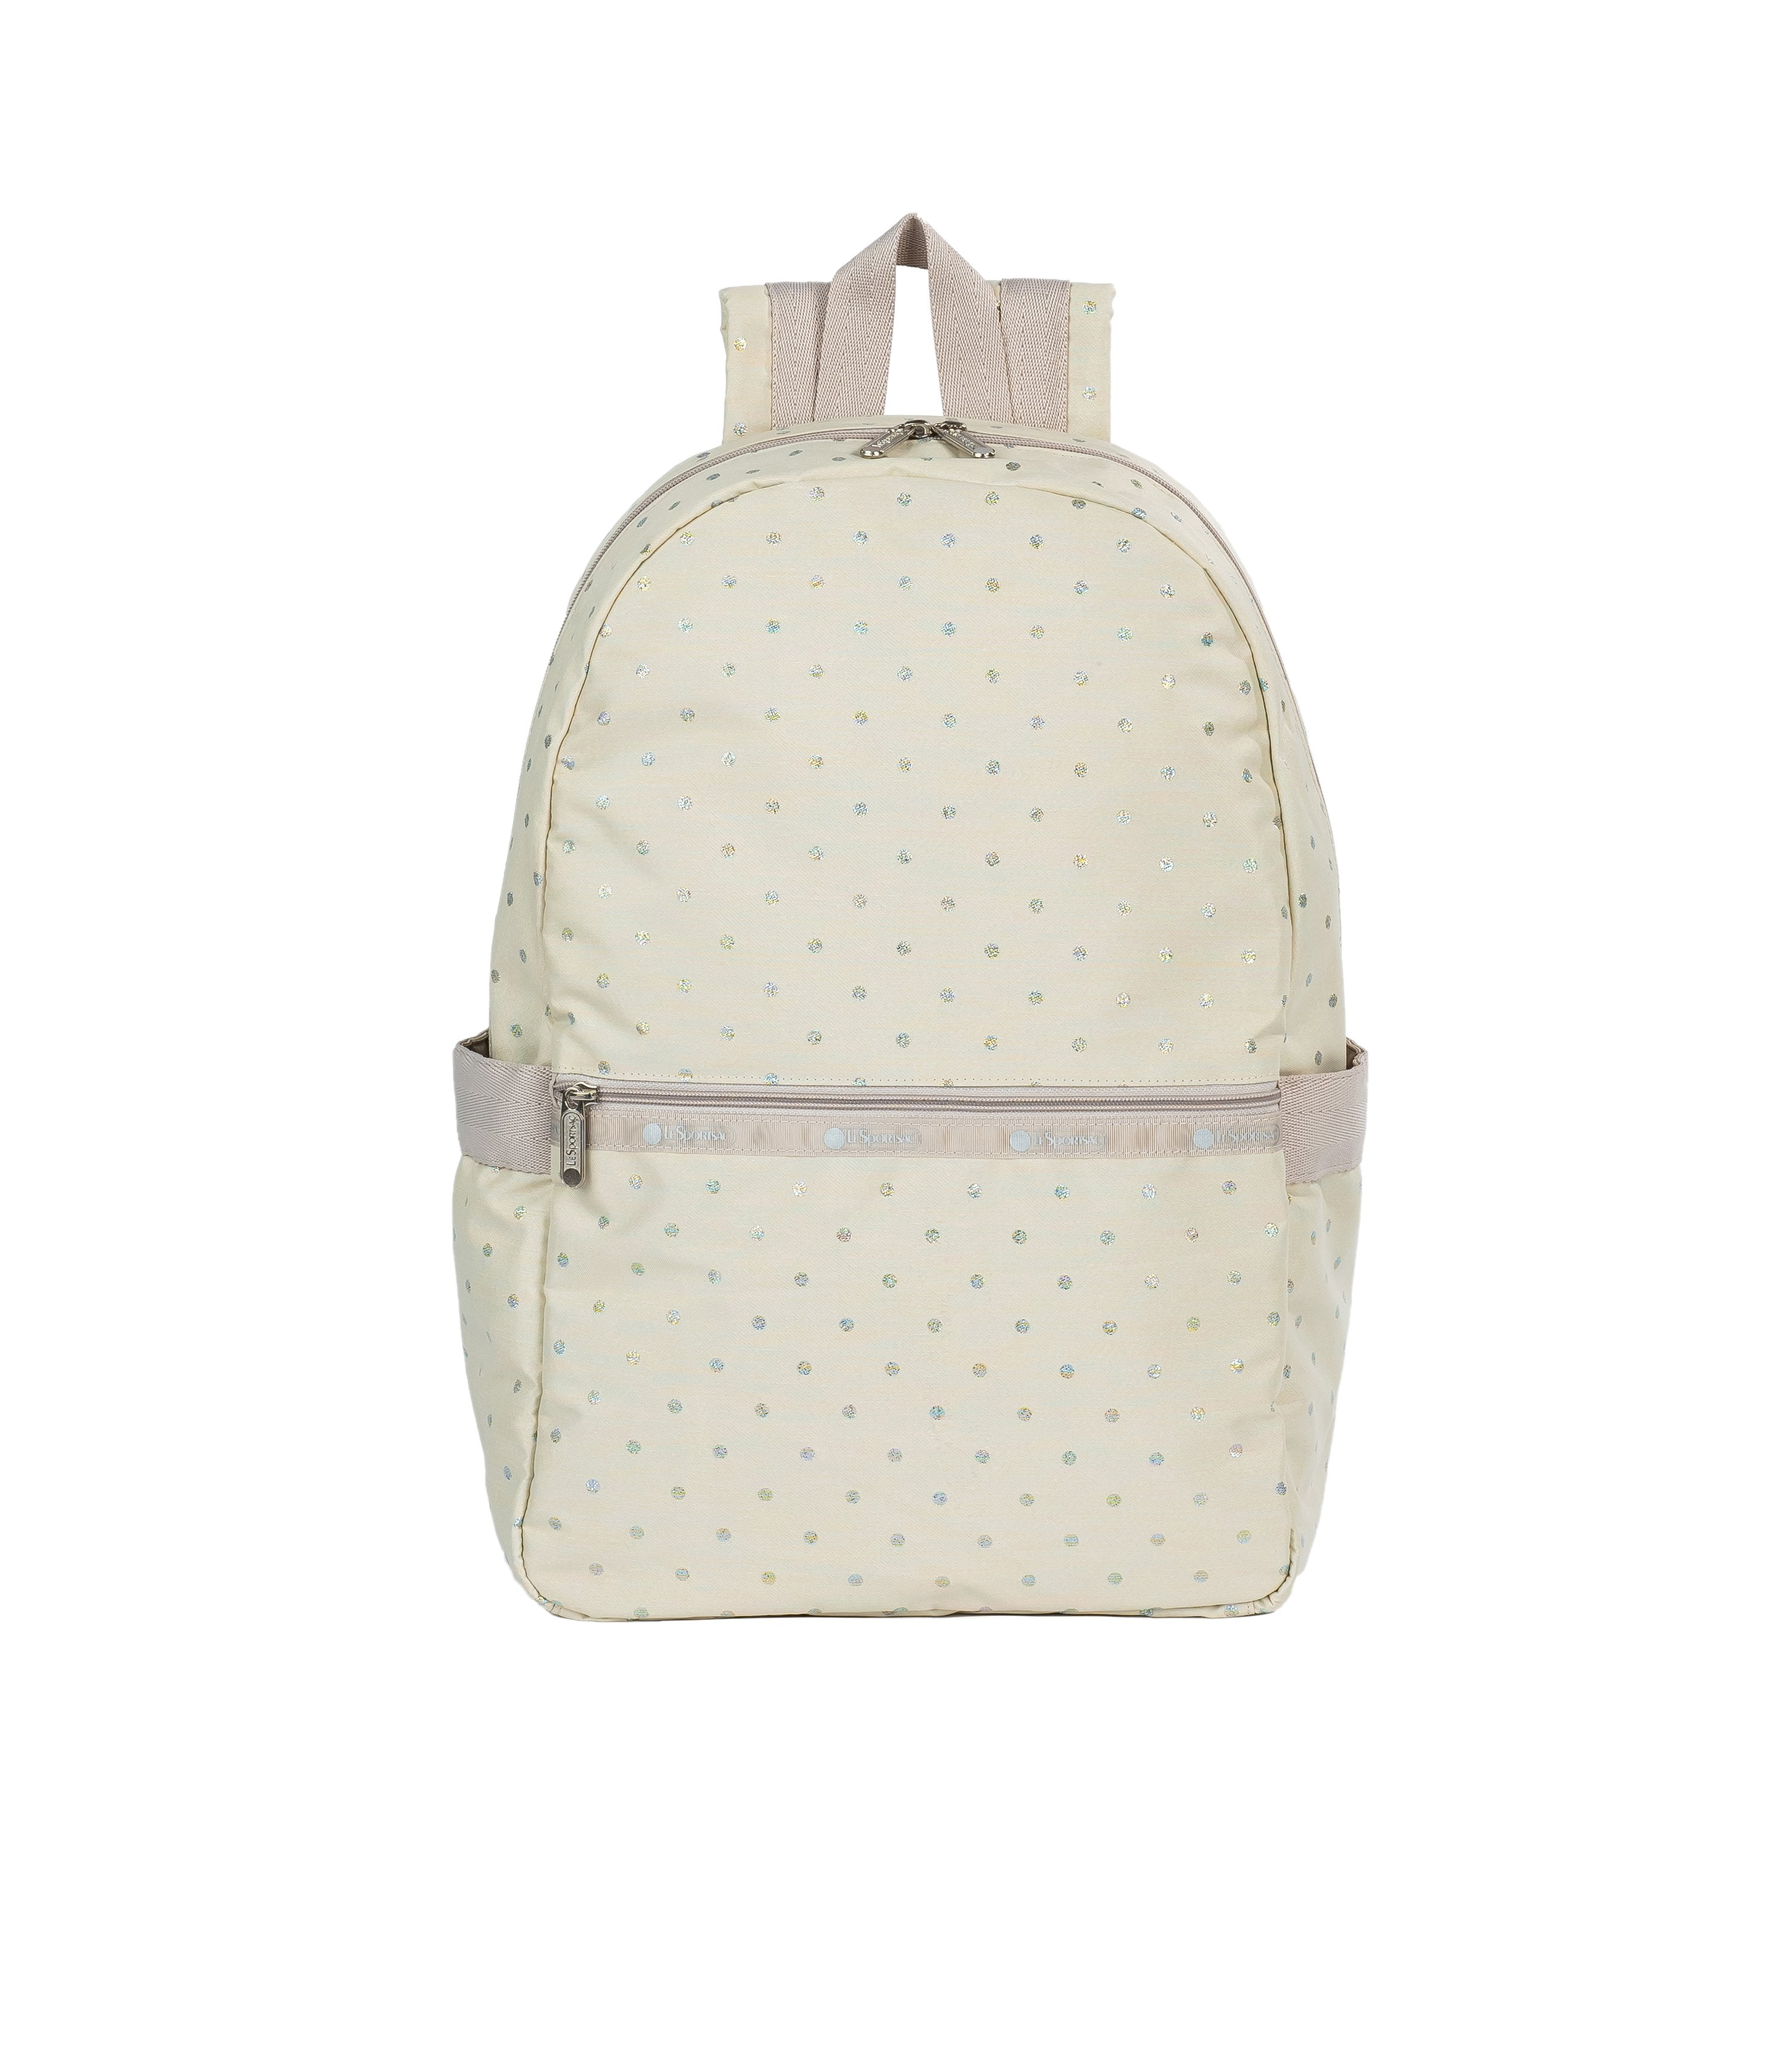 LeSportsac - Backpacks - Carrier Backpack - Rainbow Dot jacquard